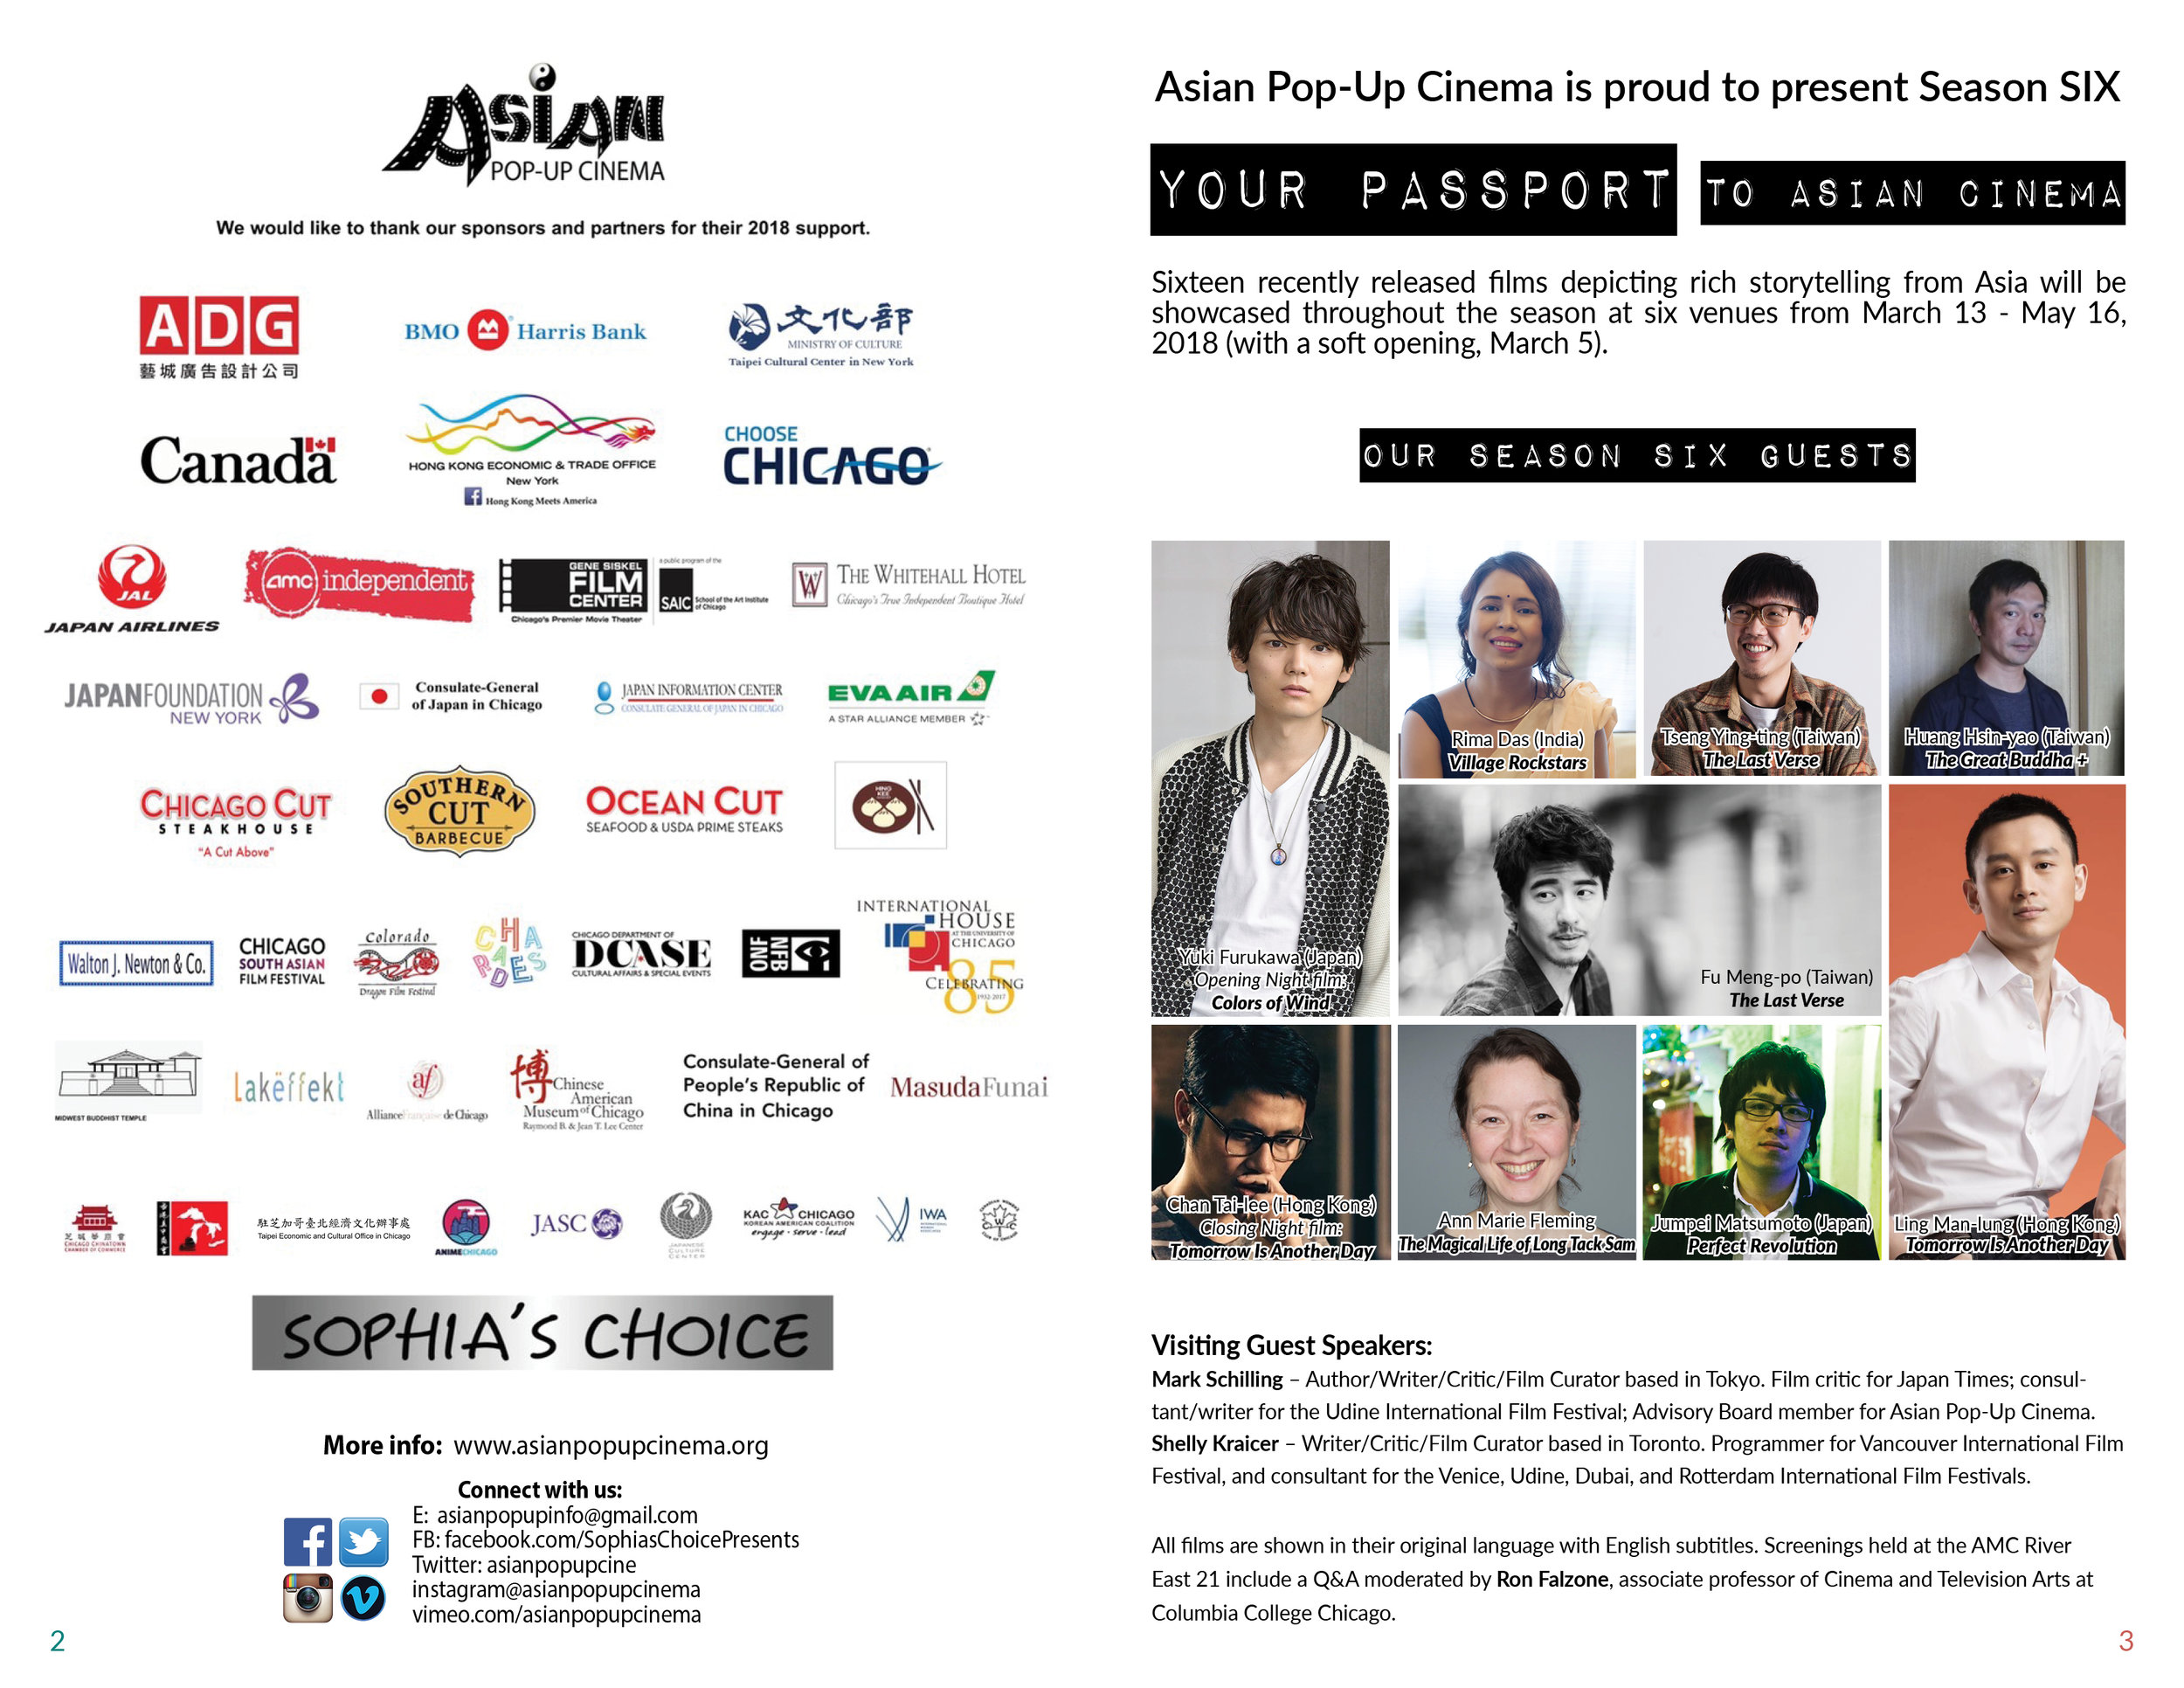 Asian Pop Up Cinema Program Book 02-18.jpg